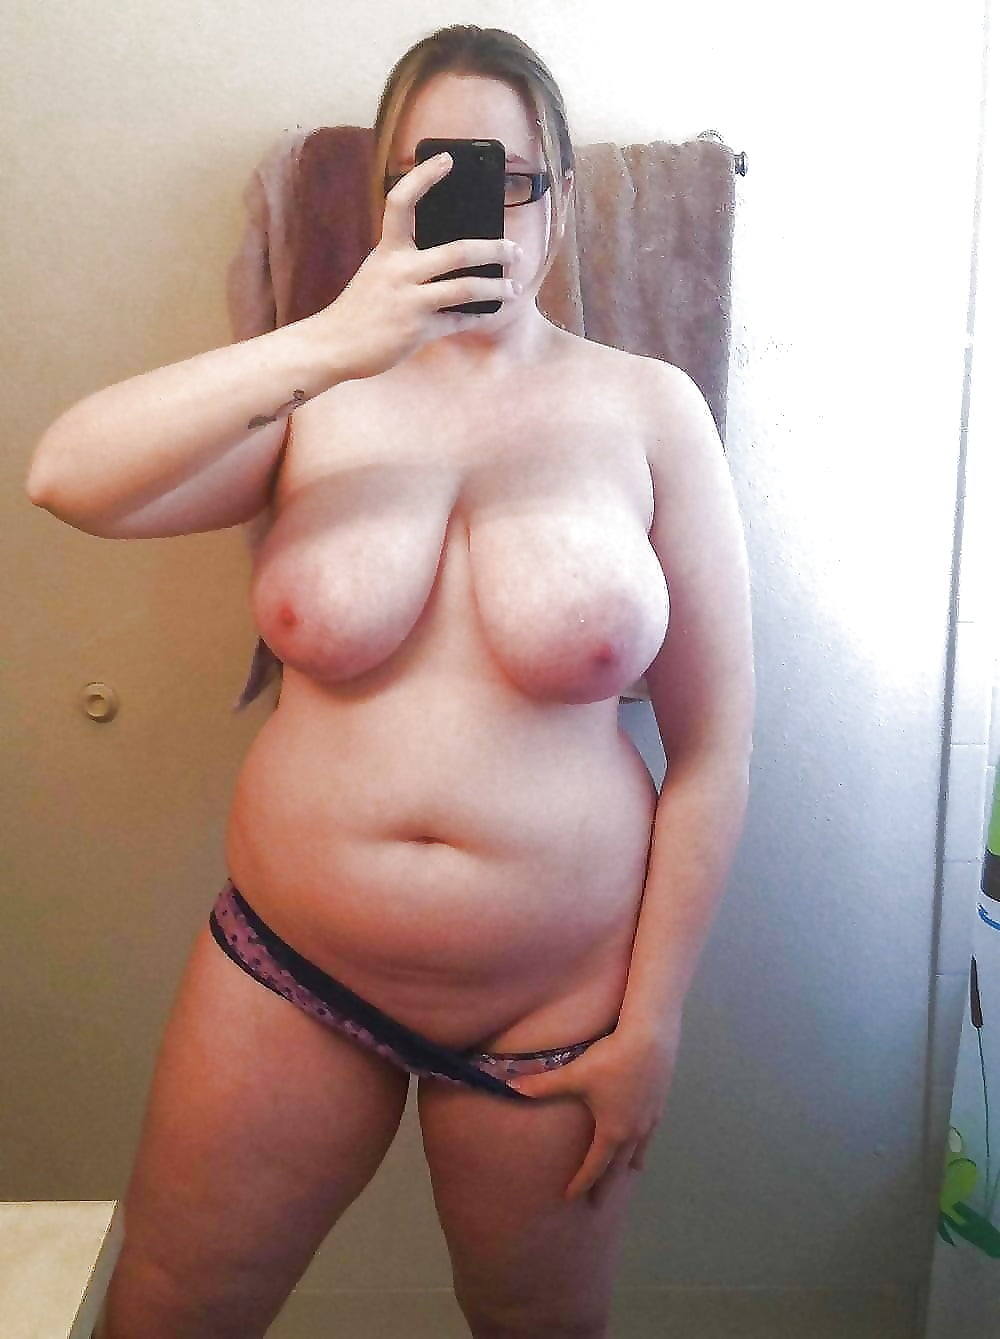 Teenage nude mature bbw self pics